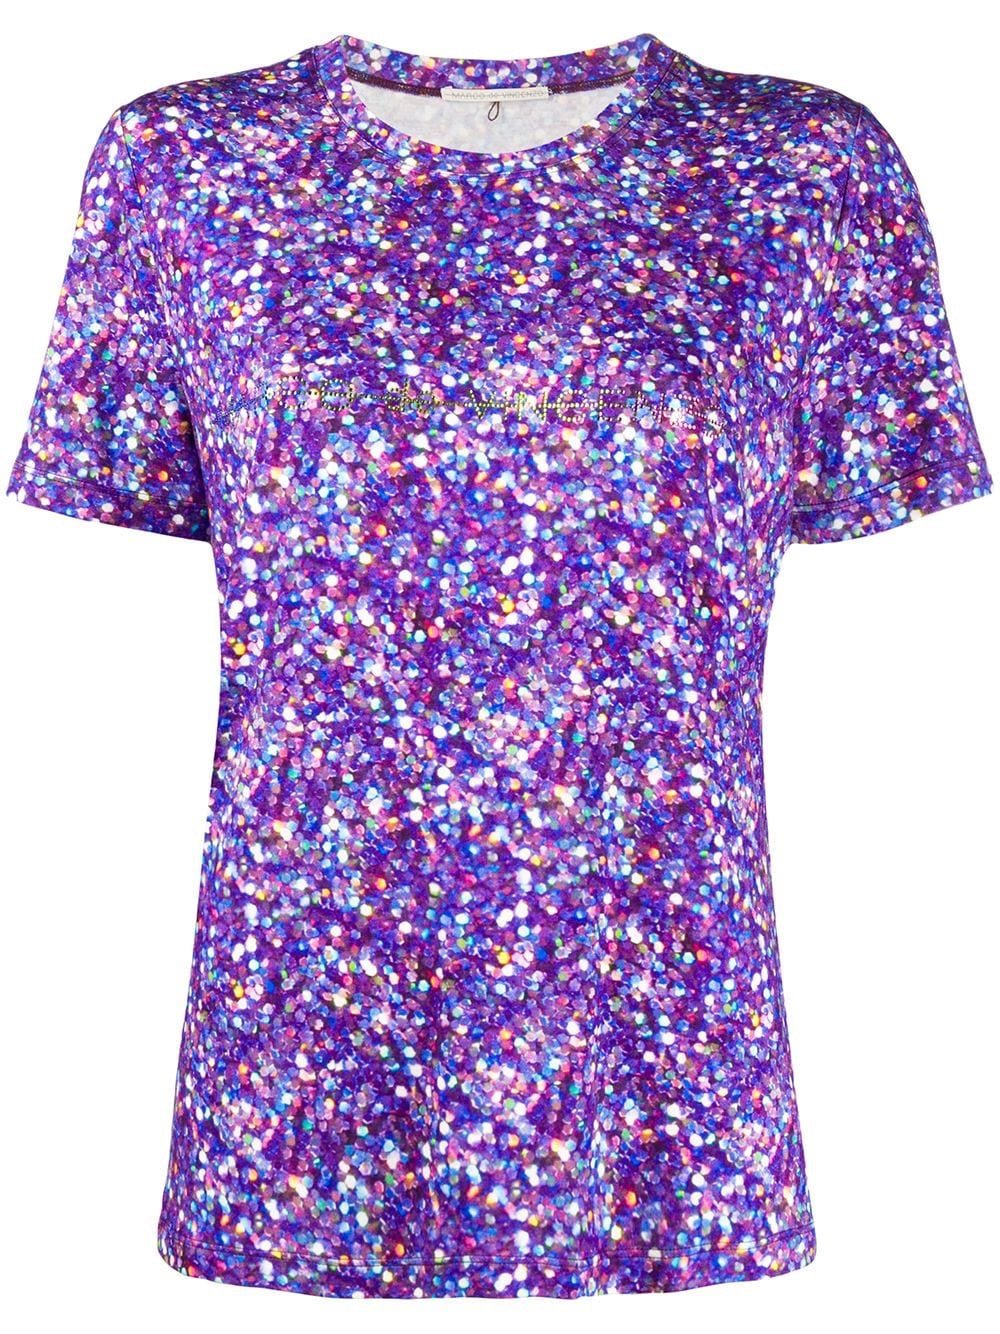 T-shirt with glitter print